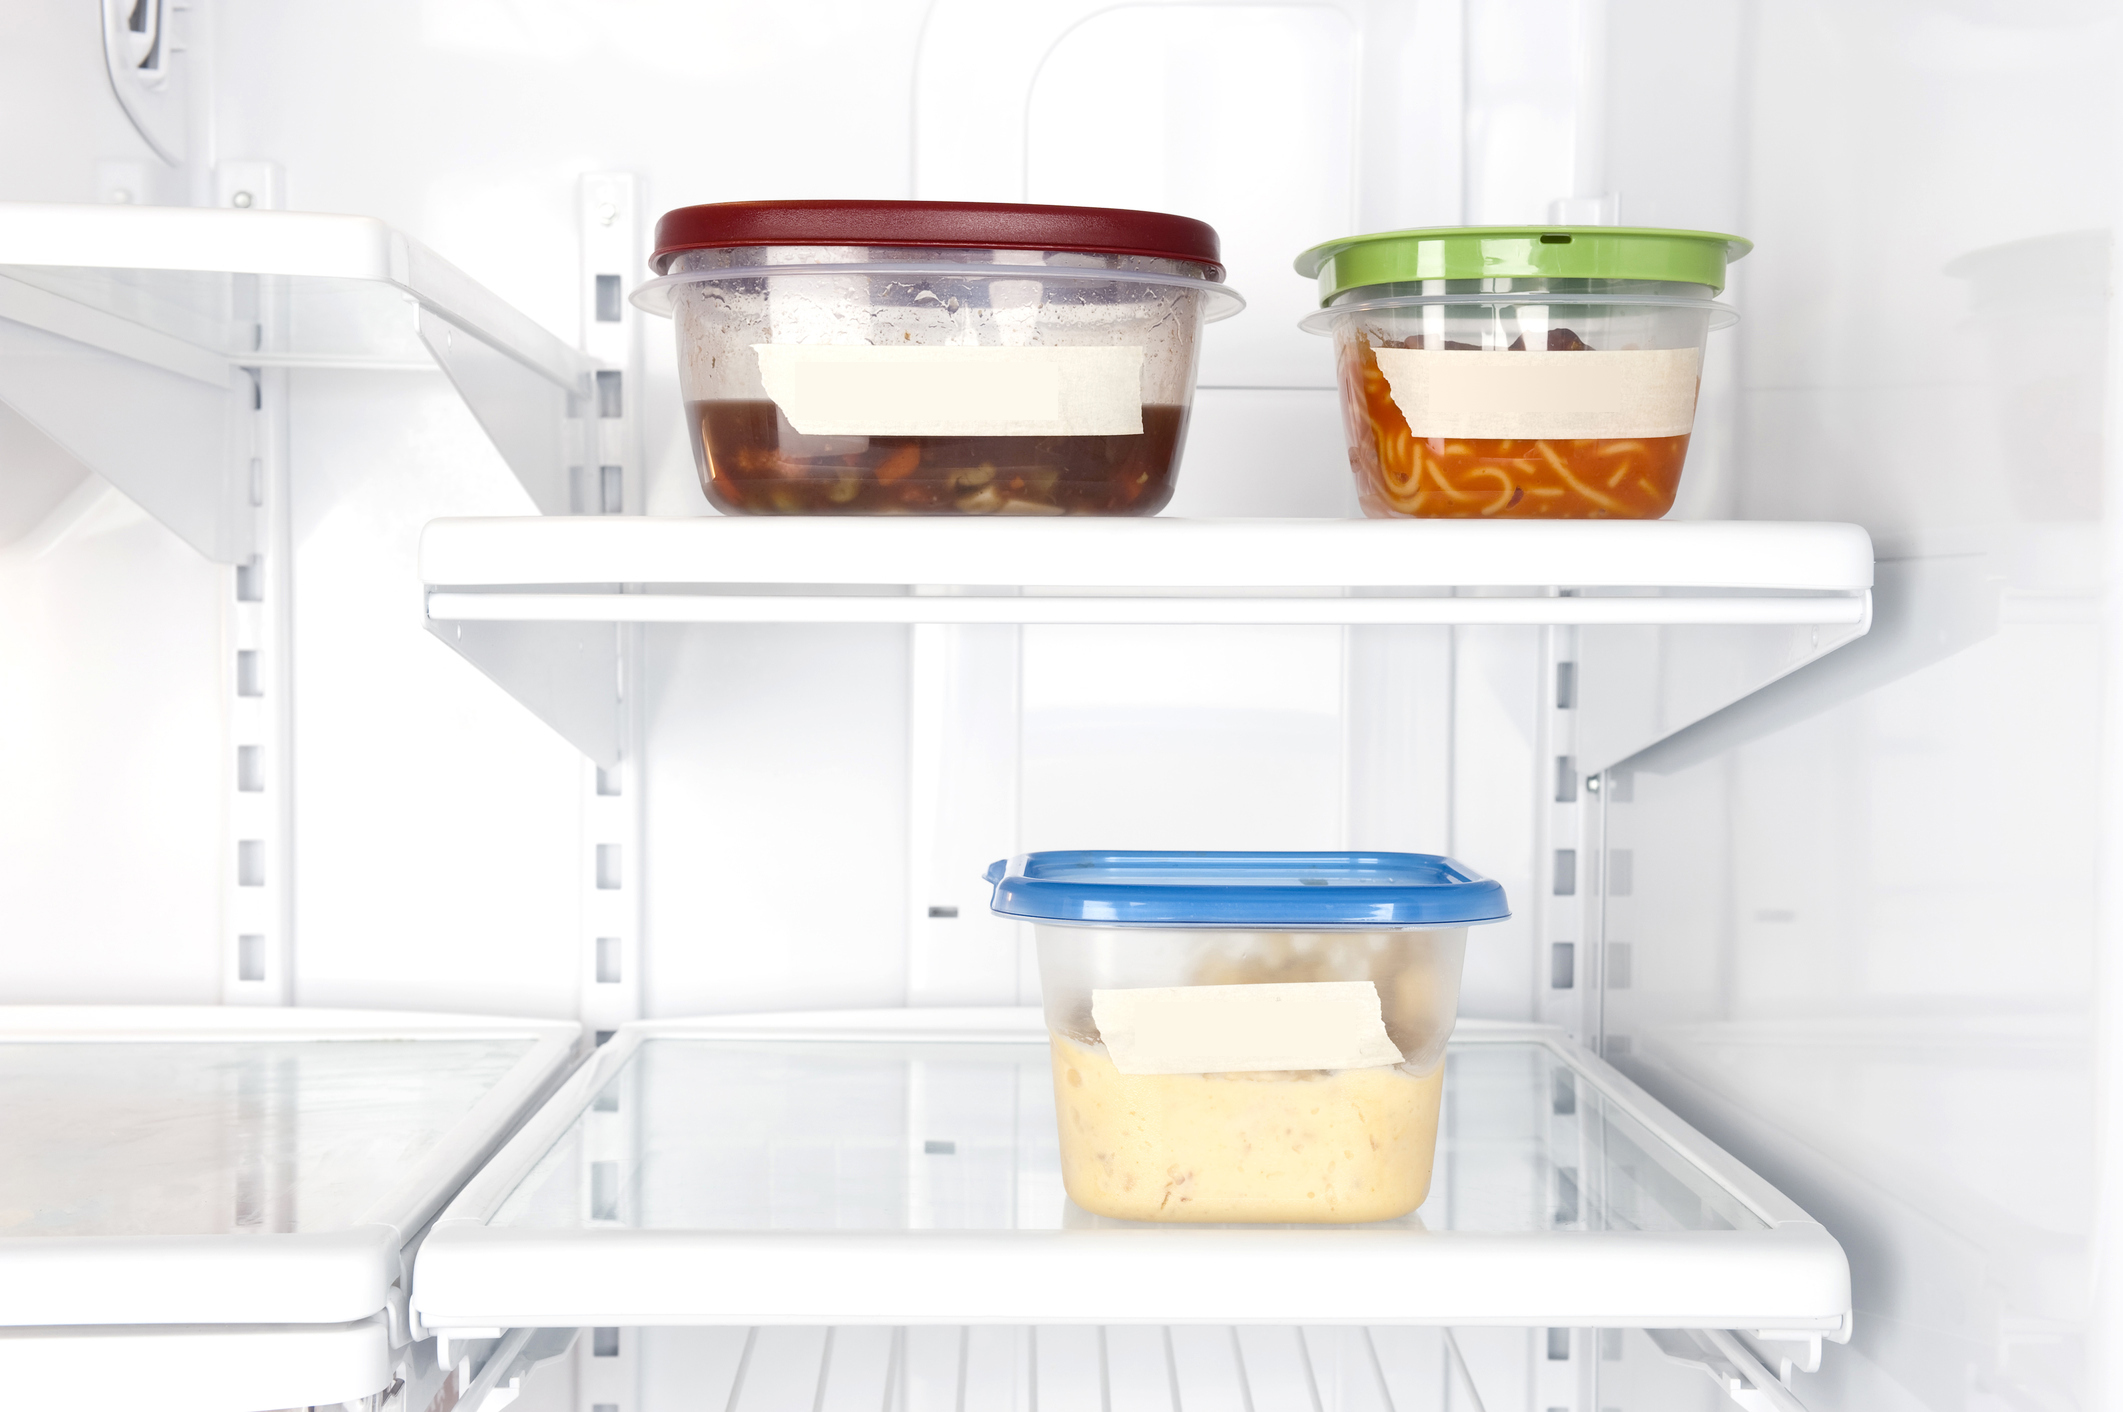 Leftovers-in-refrigerator.jpg